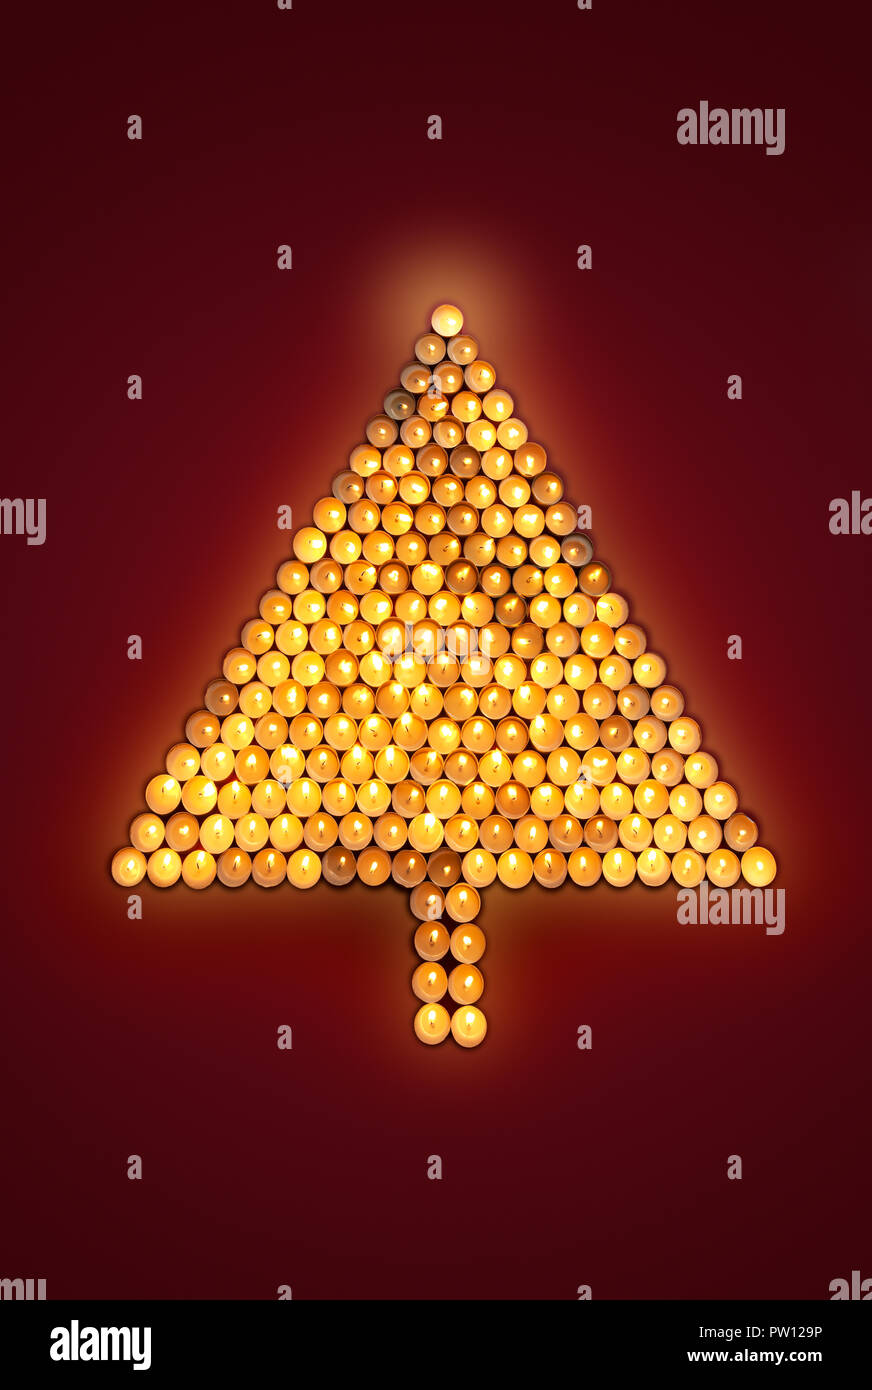 Concept A Christmas Tree made of Flickering Candles, Holidays, Celebration - Stock Image